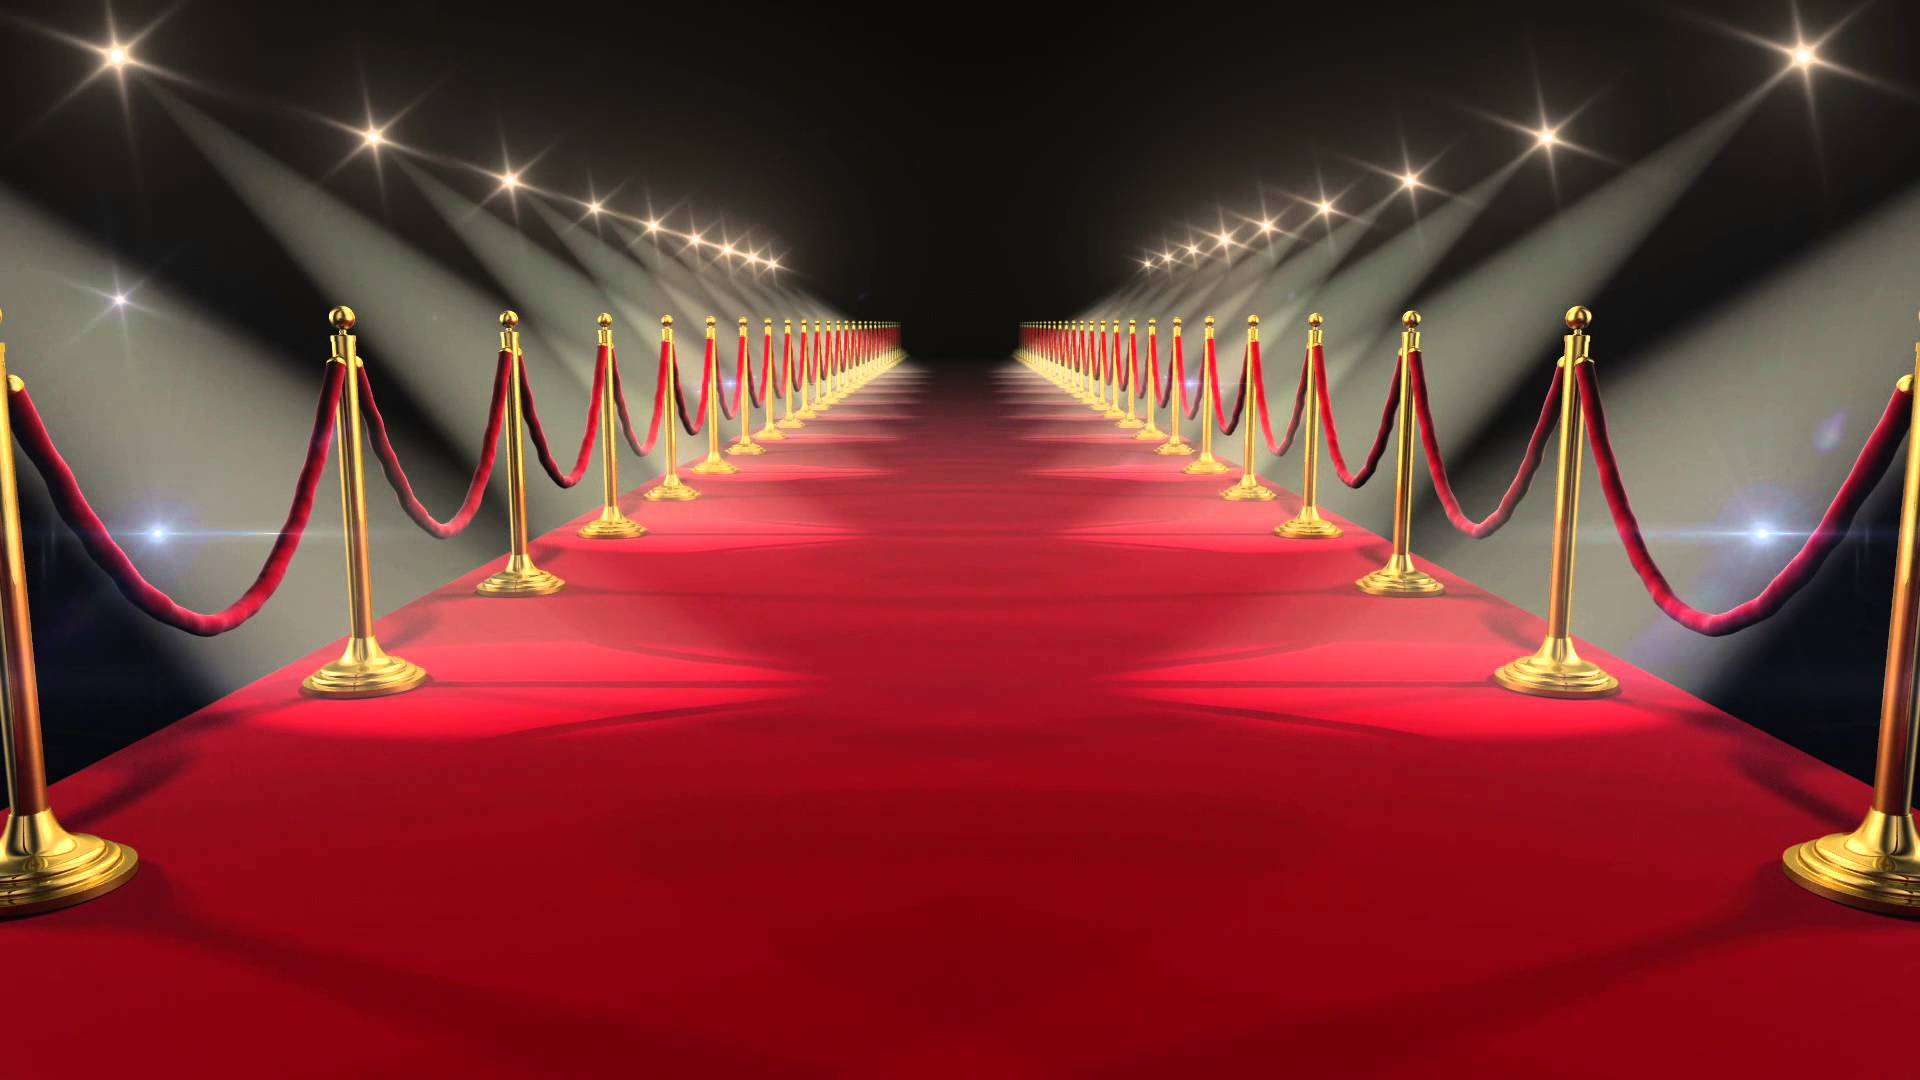 Red Carpet Background 1920x1080